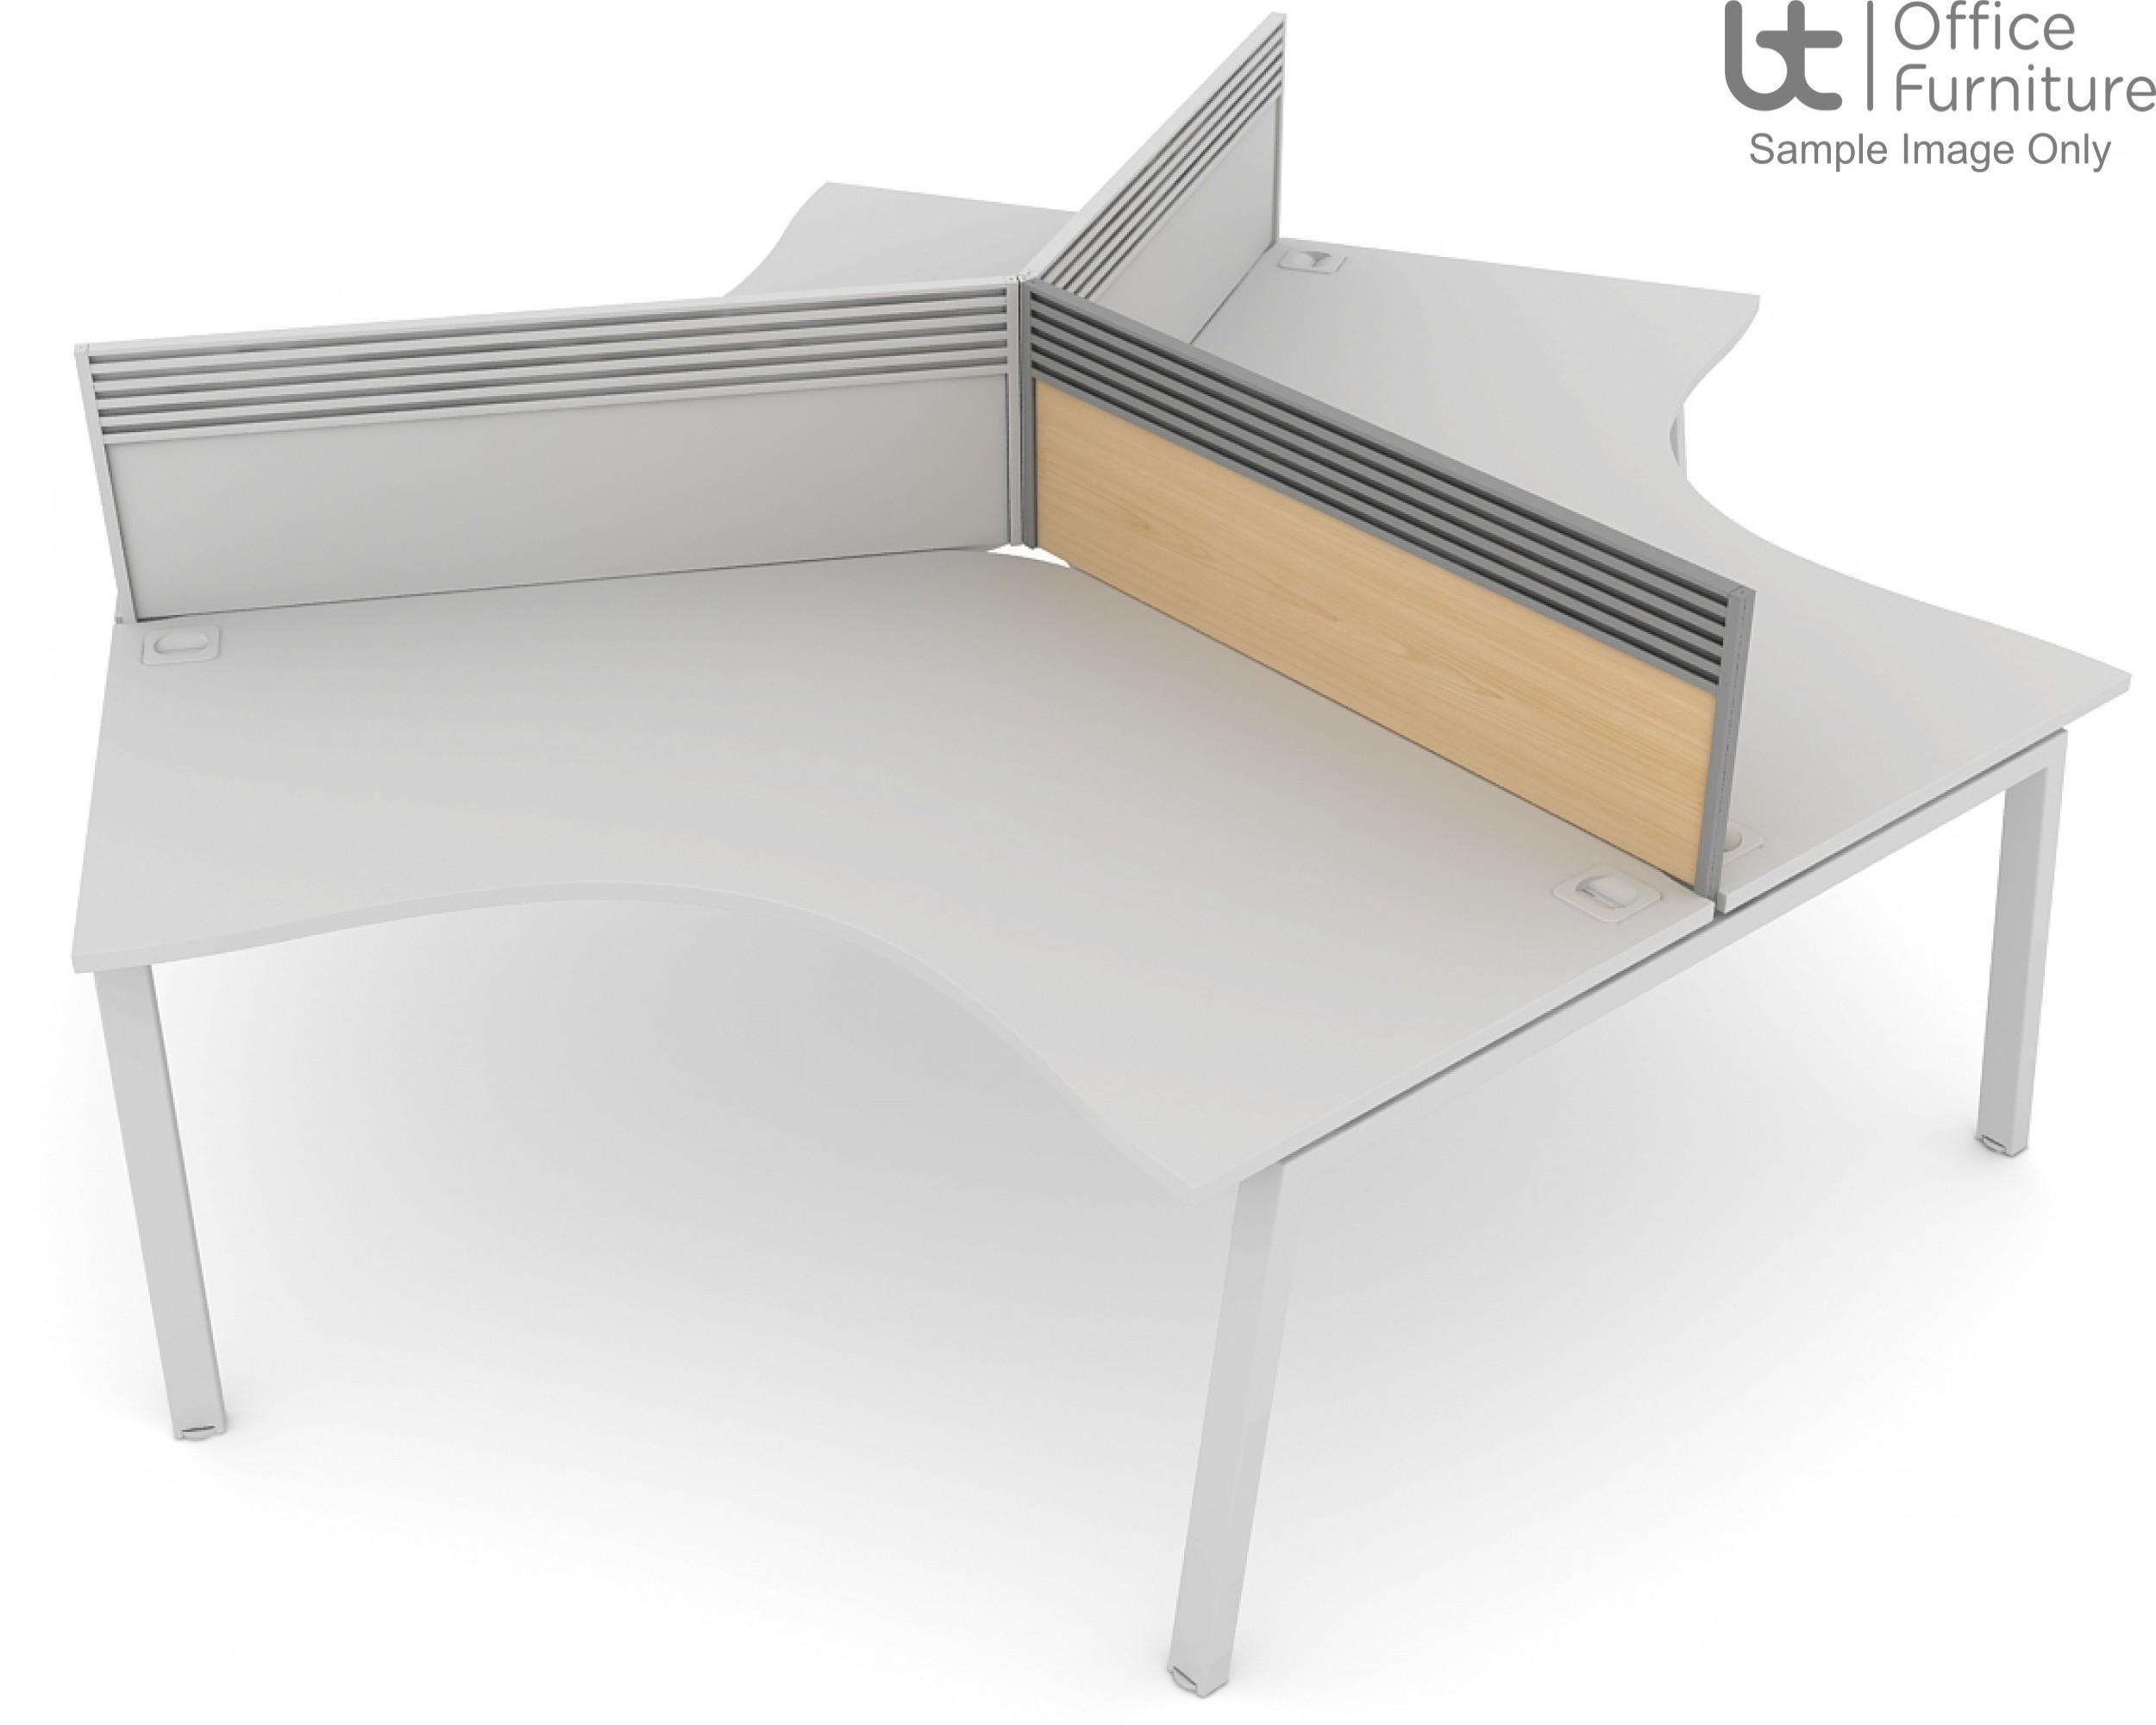 Elite Linnea System Screen - MFC 120 Degree Screen with Management Rail